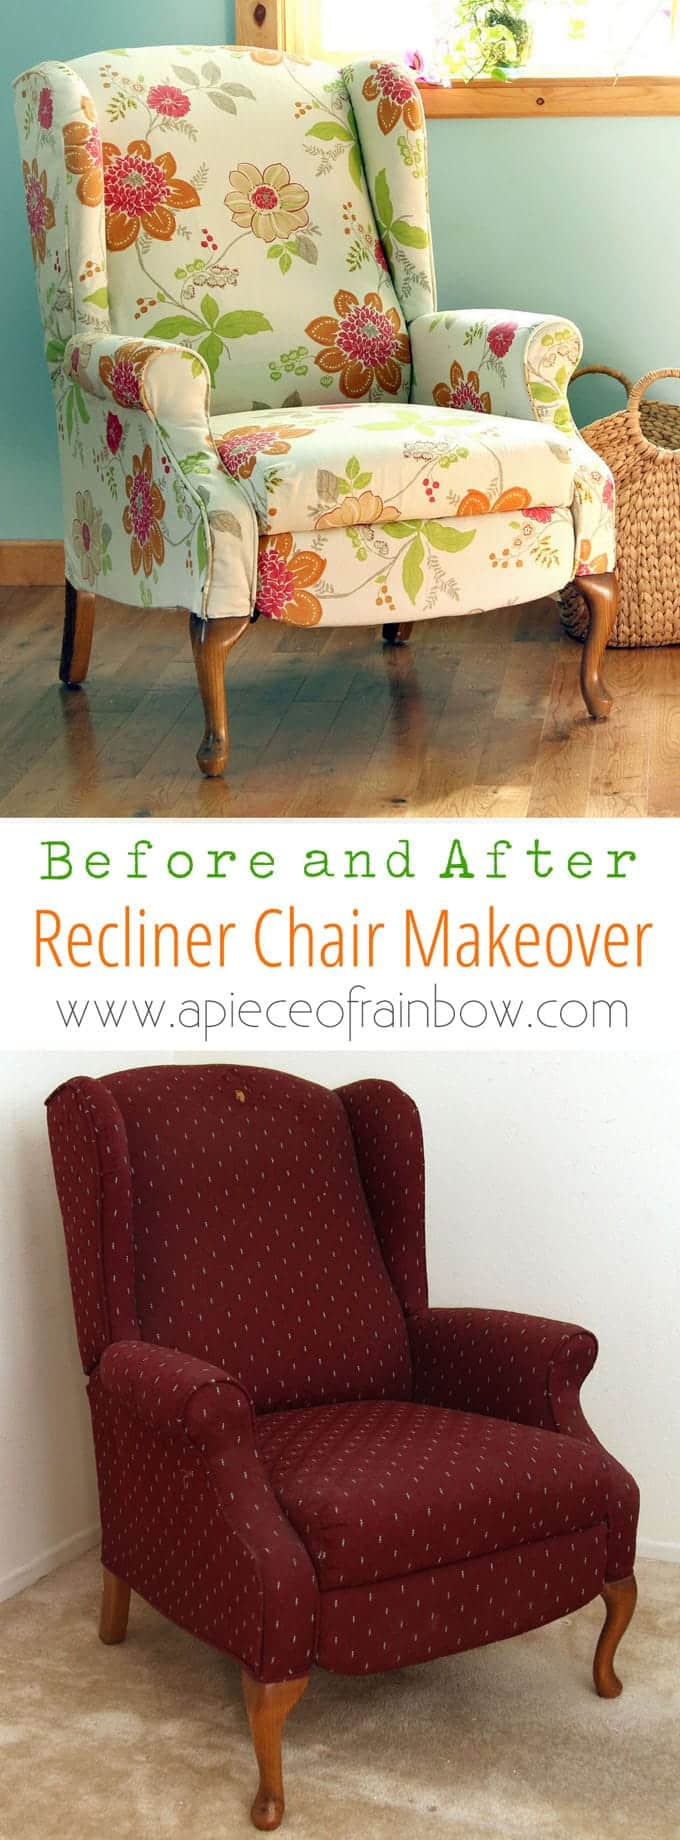 Fabric Chair Makeover Before After Page 2 Of 2 A Piece